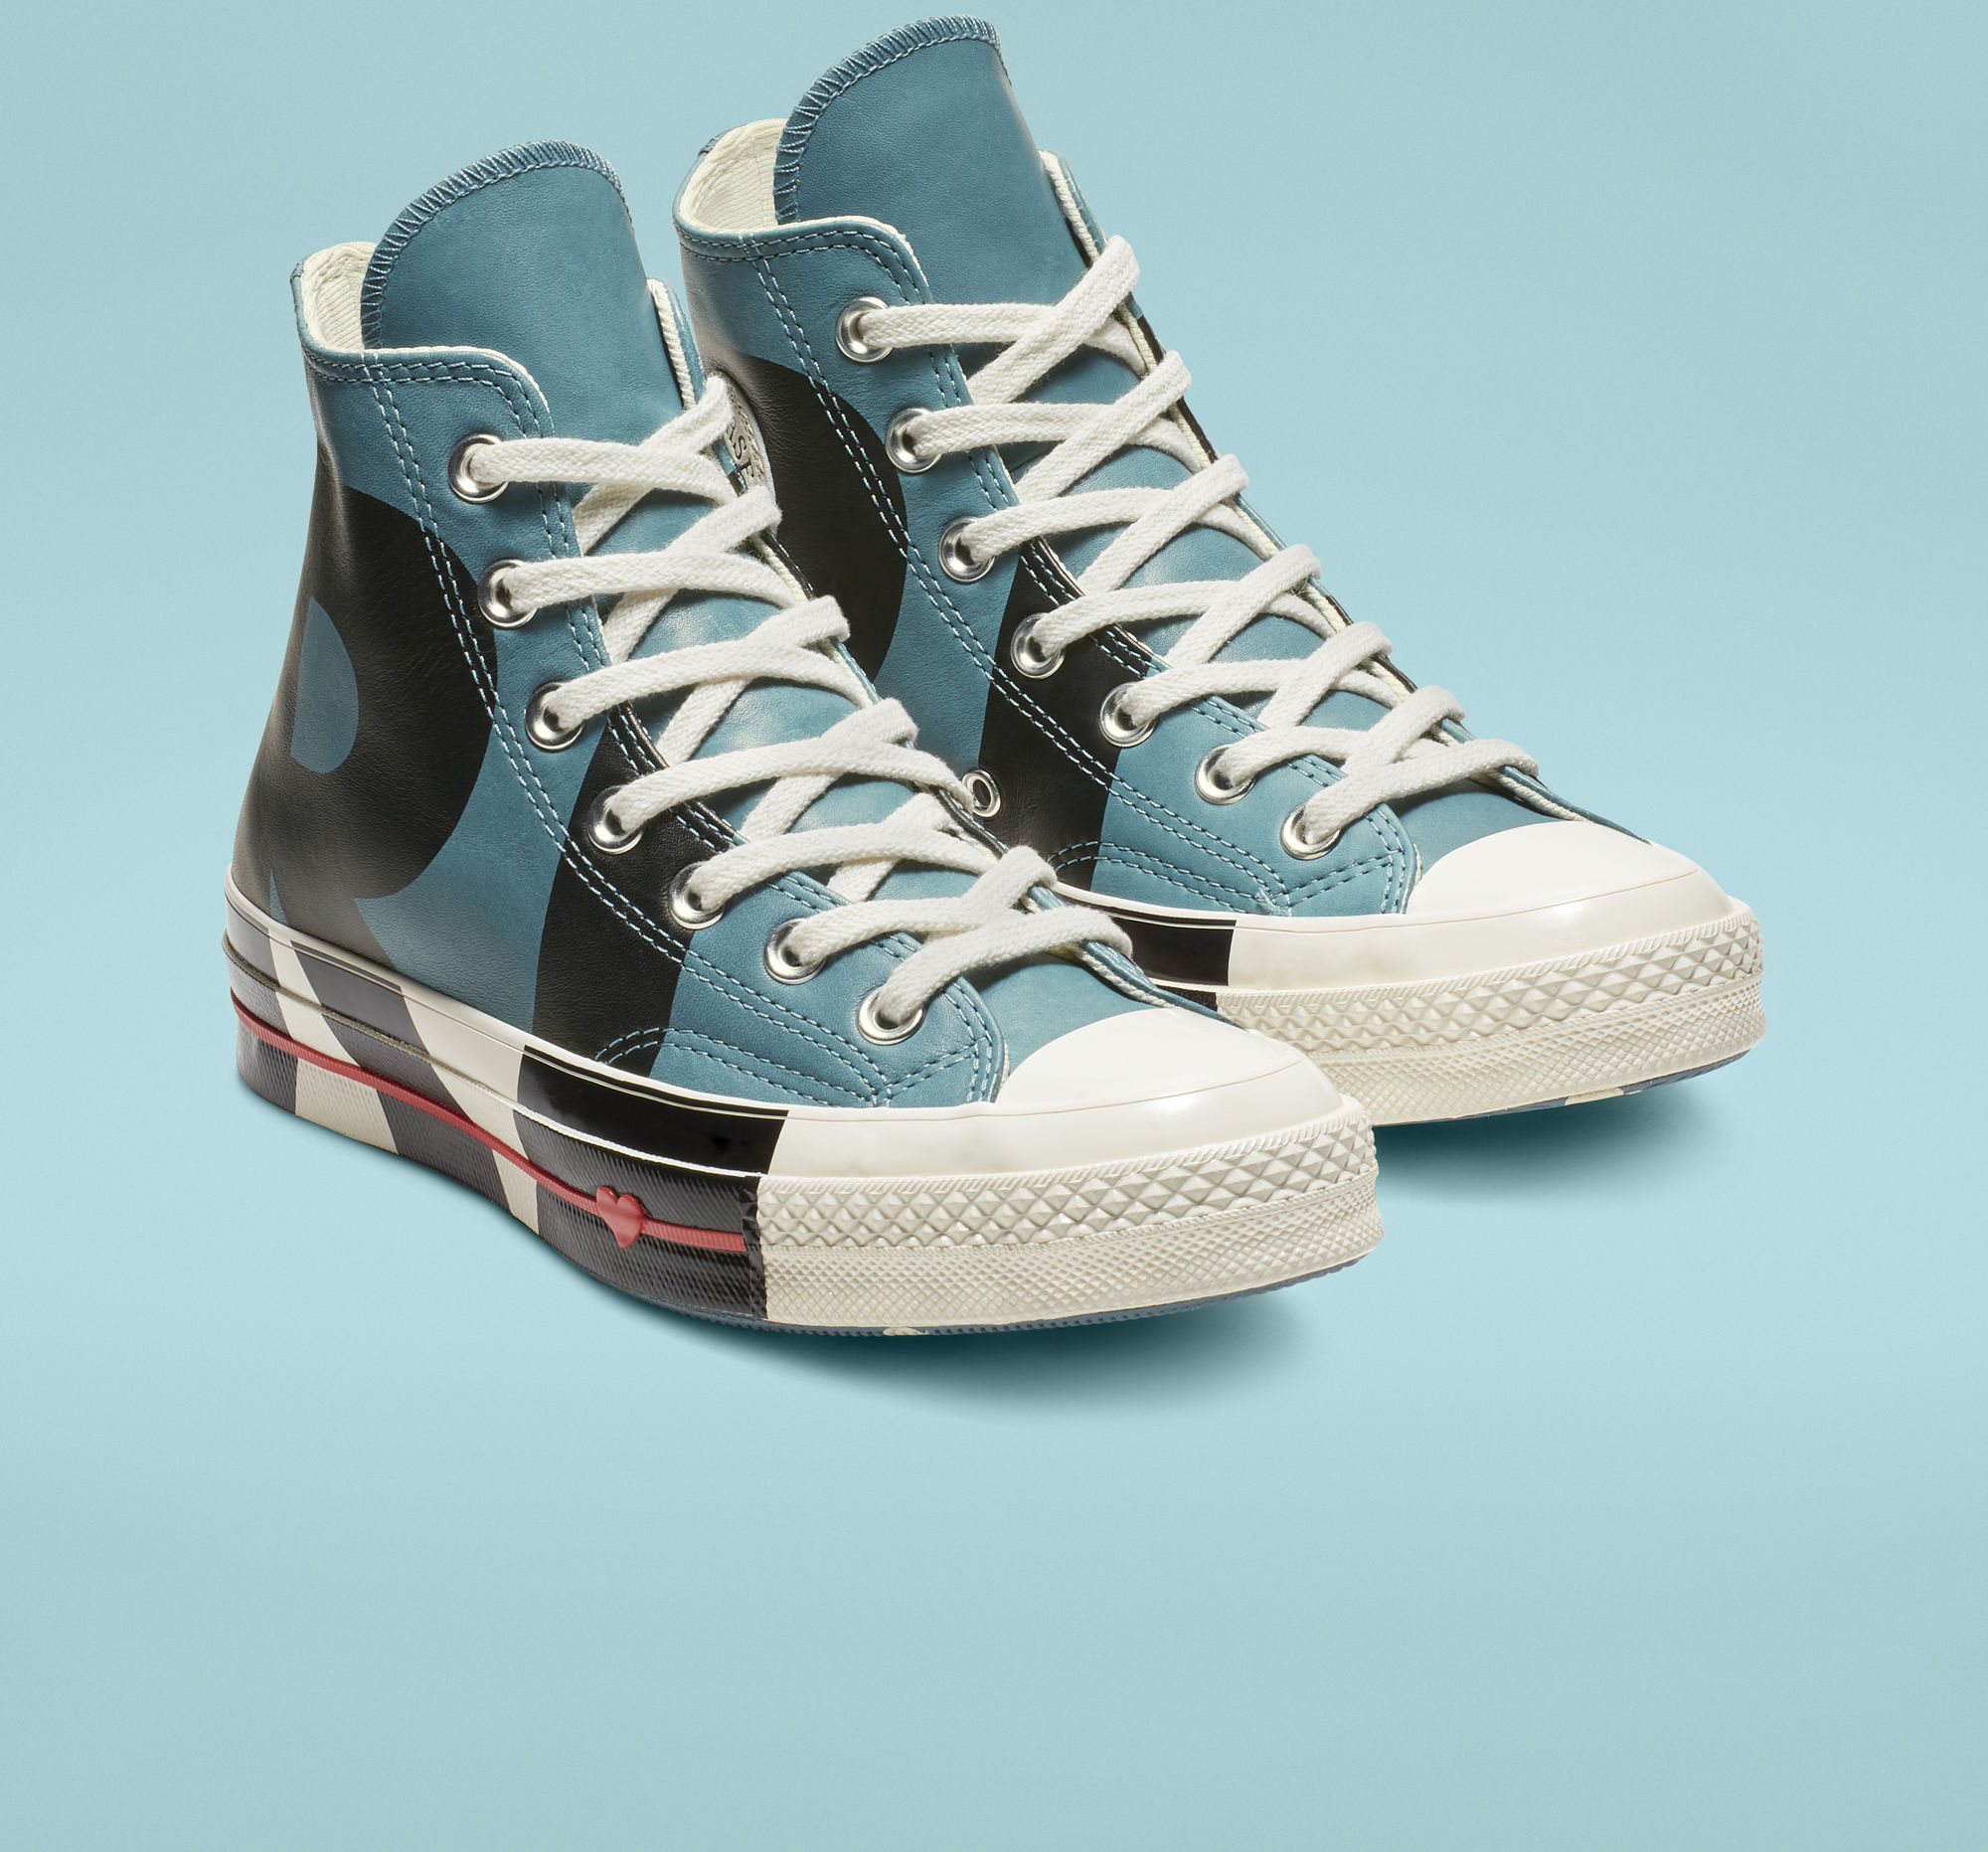 Chuck 70 Love Graphic High Top in Celestial Teal/Black/Egret